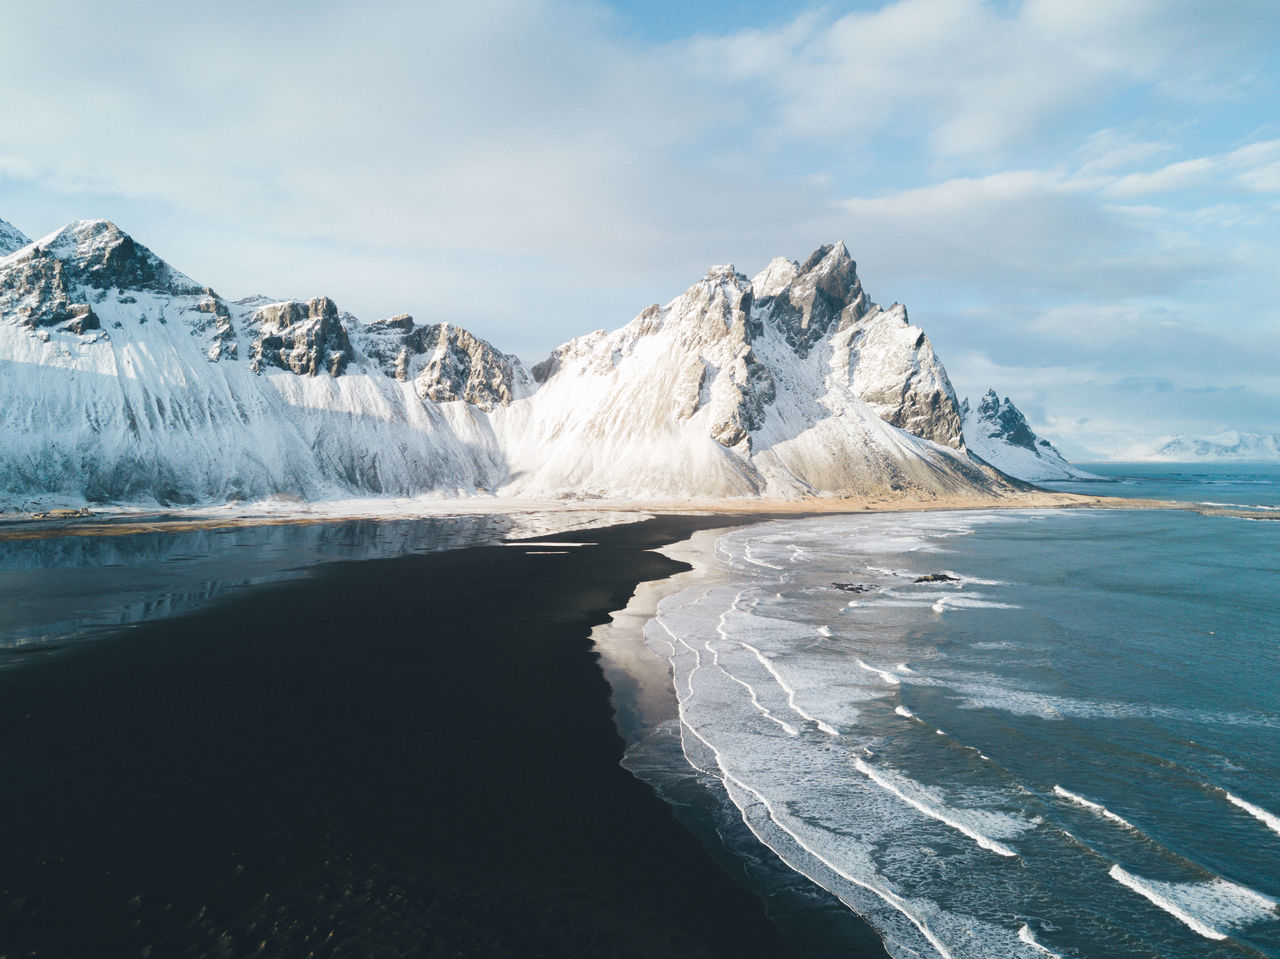 Stokksnes black sand beach in Iceland at sunset Beauty In Nature Day Glacial Glacier Ice Iceberg Landscape Mountain Nature No People Outdoors Sea Sky Snow Water Fresh On Market 2017